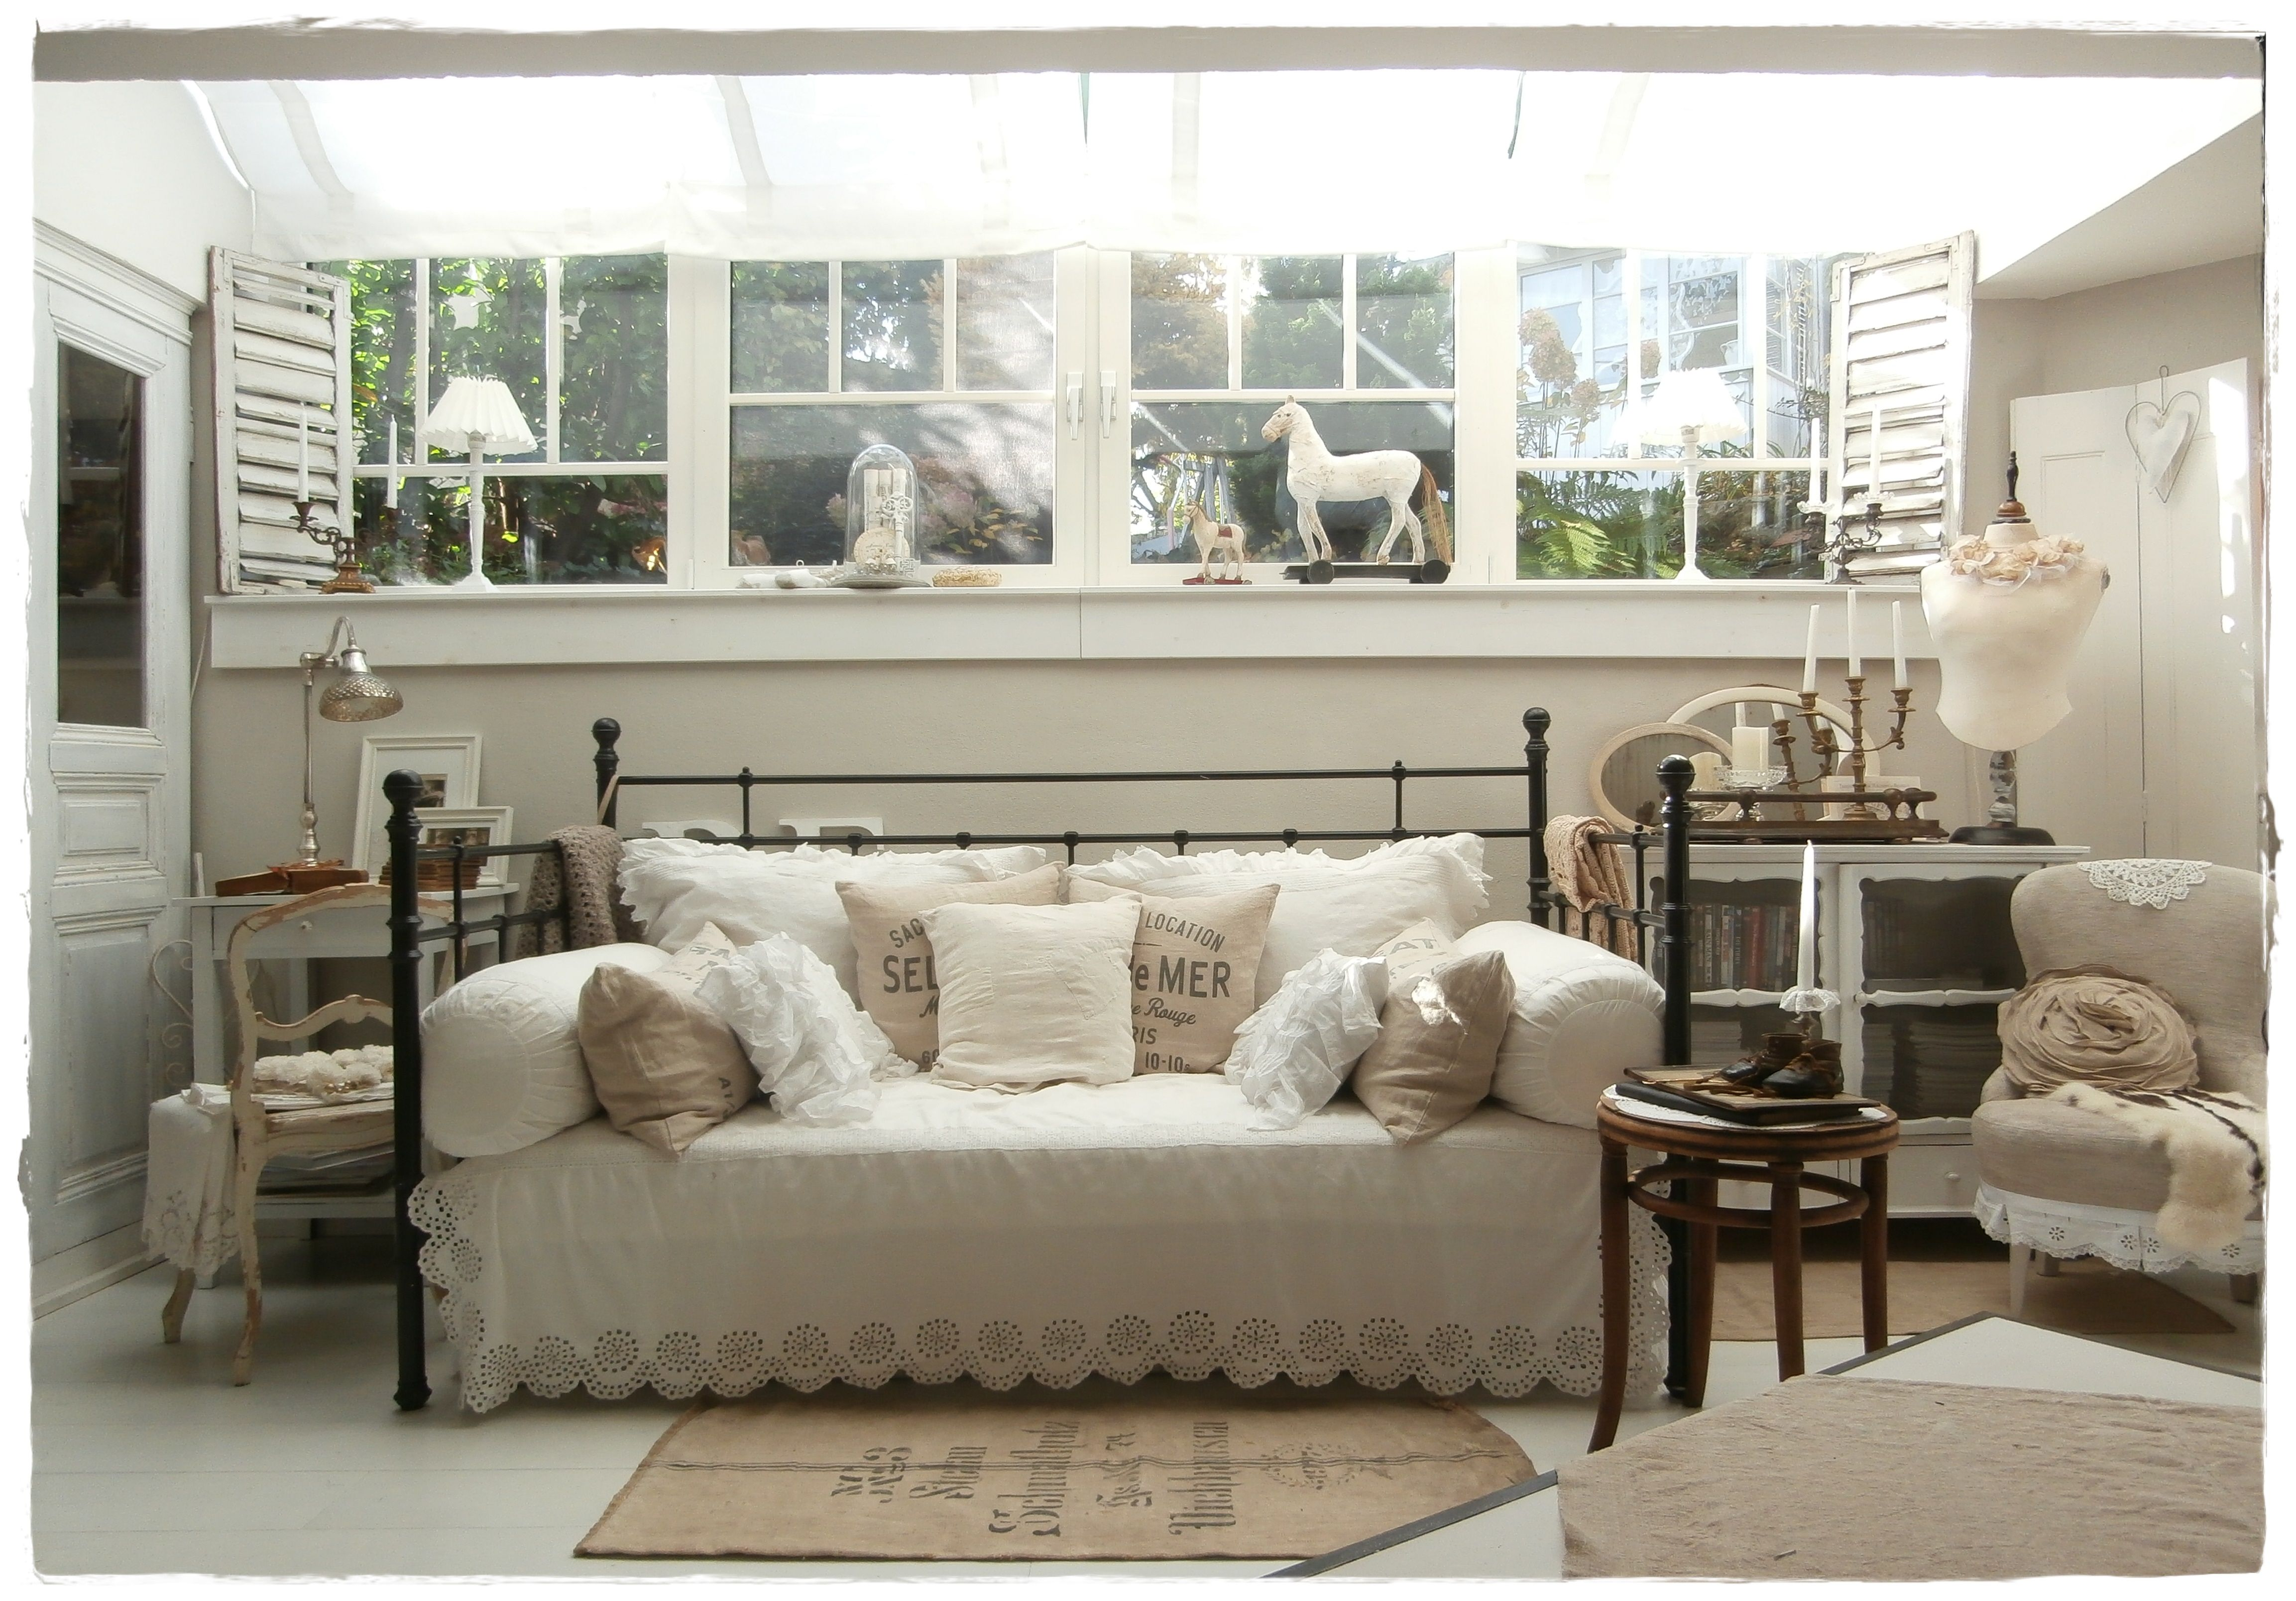 wohnzimmer livingroom shabby chic shabbylandhaus pinterest shabby chic shabby und wohnzimmer. Black Bedroom Furniture Sets. Home Design Ideas